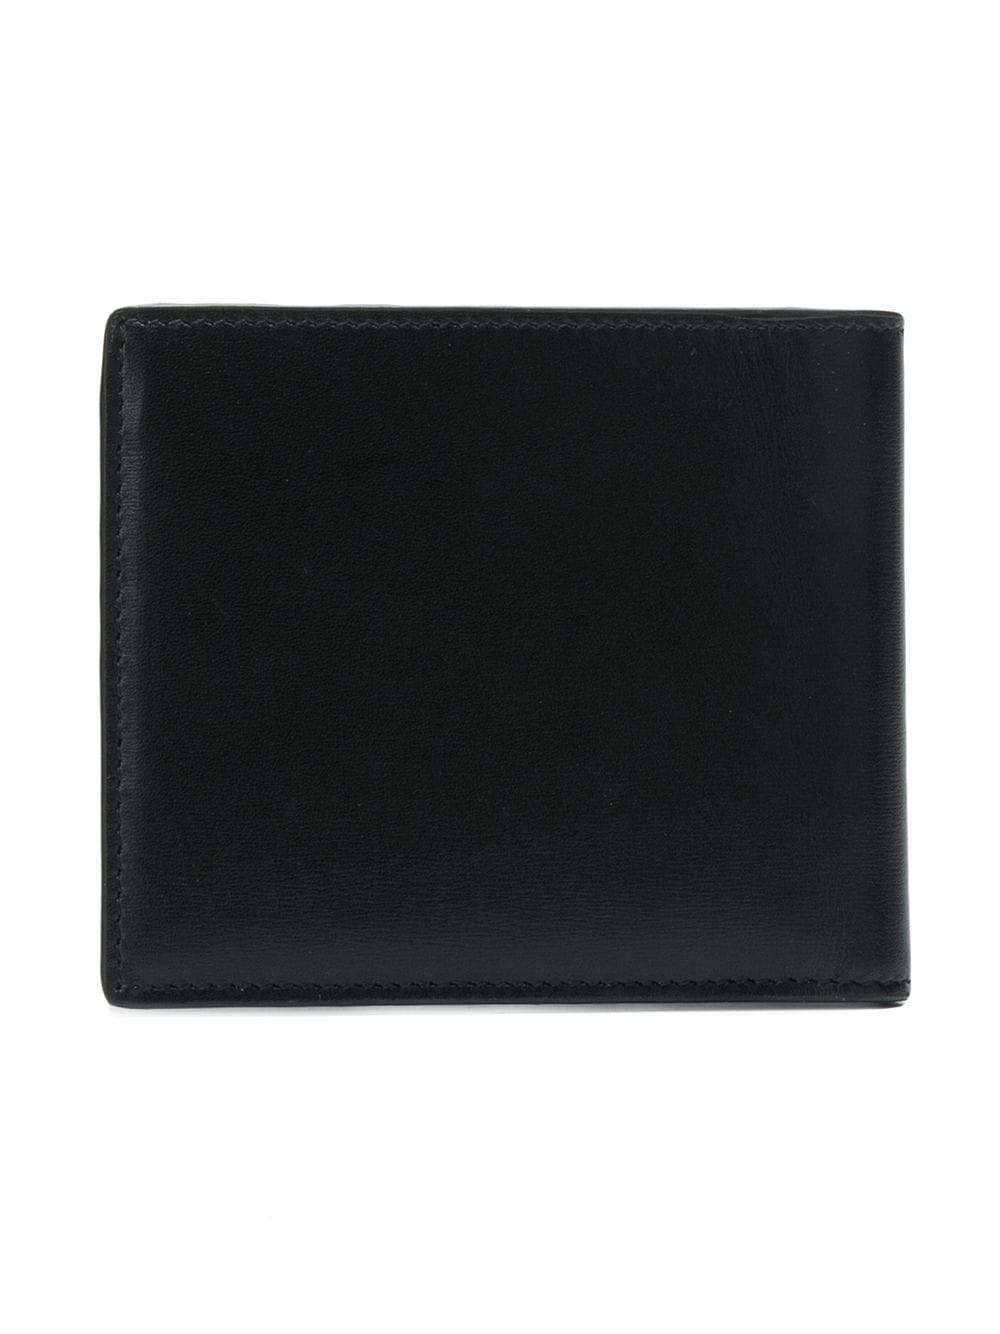 Black East West Monogram Wallet